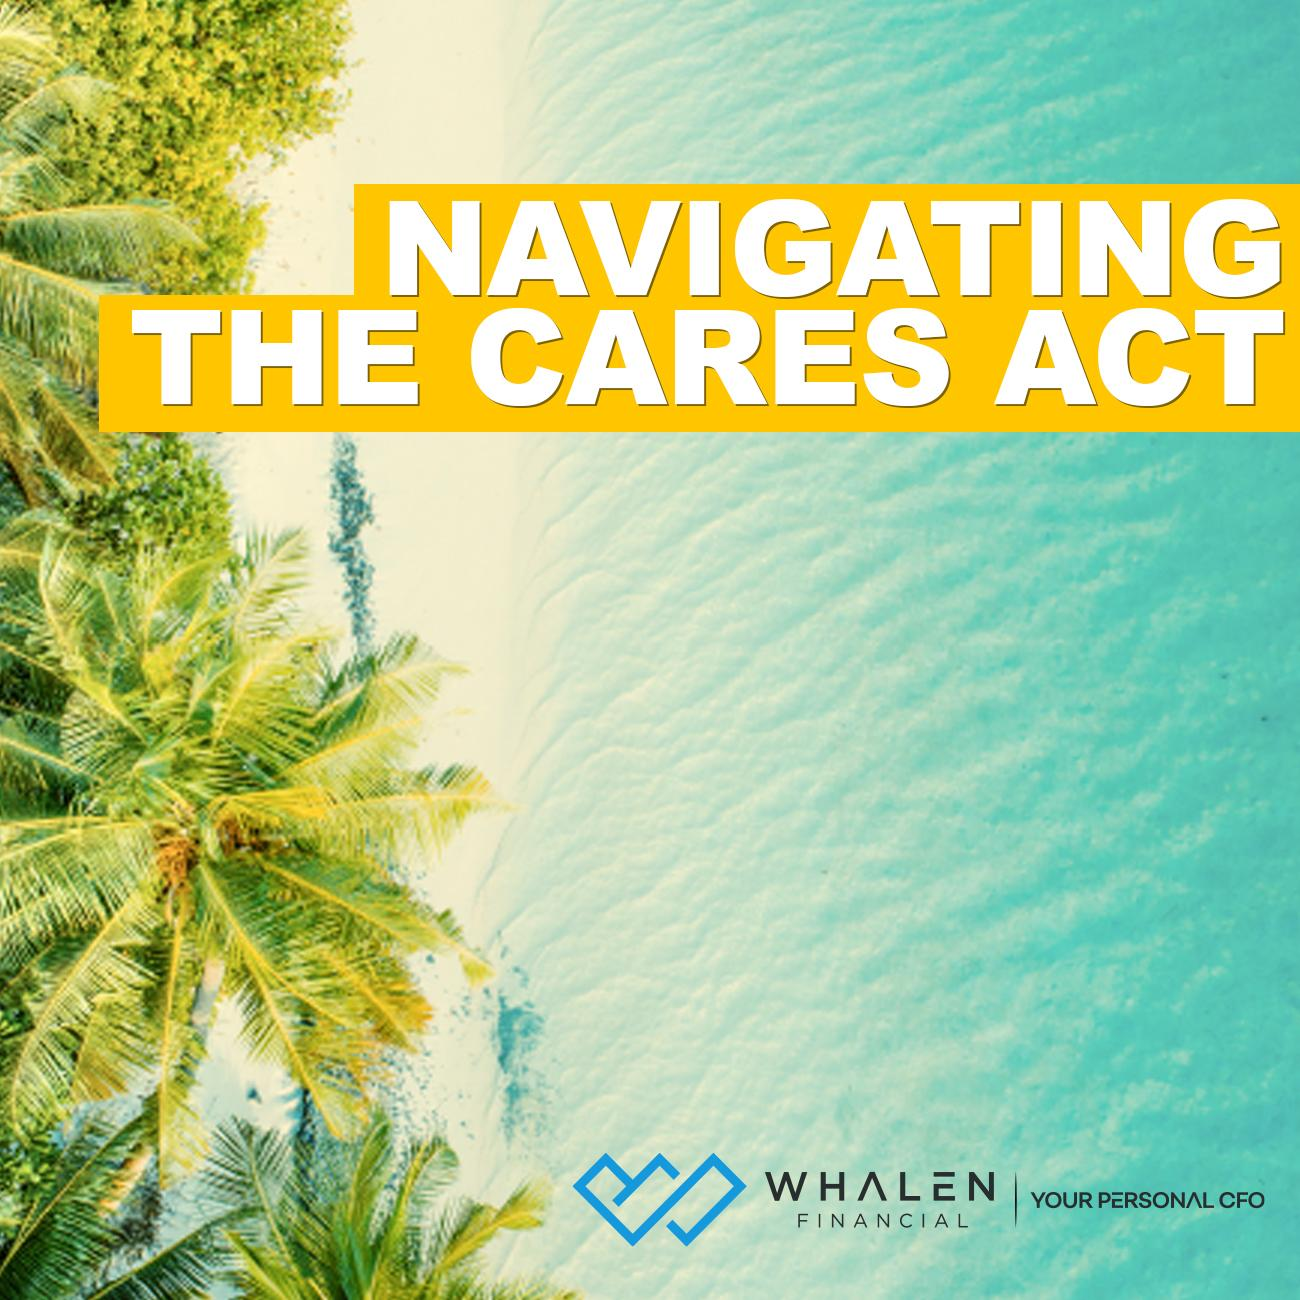 NAVIGATING THE CARES ACT Thumbnail